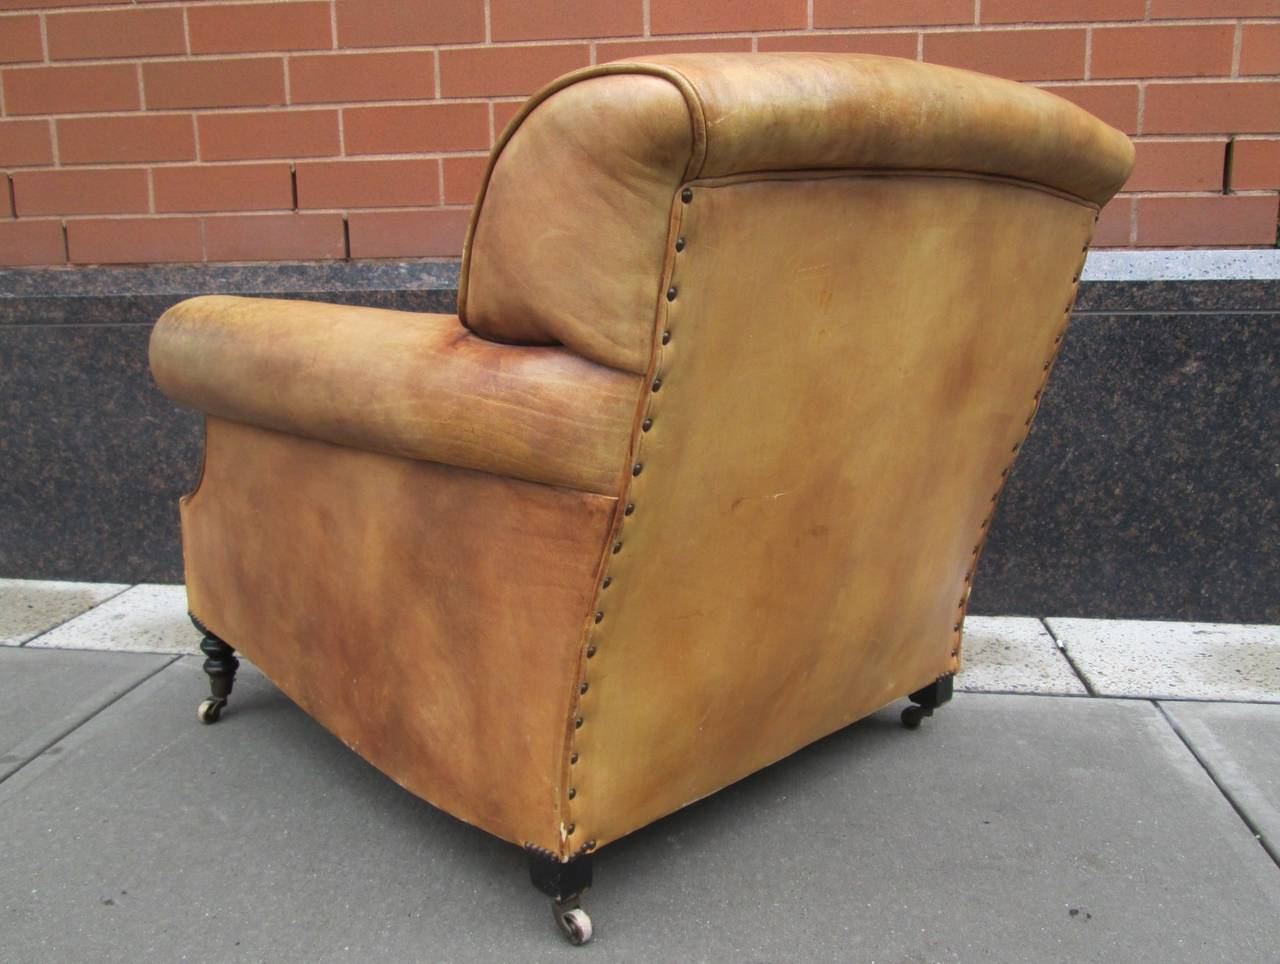 Leather Lounge Chair And Ottoman By George Smith. Distressed Leather With  Wood Legs And Casters